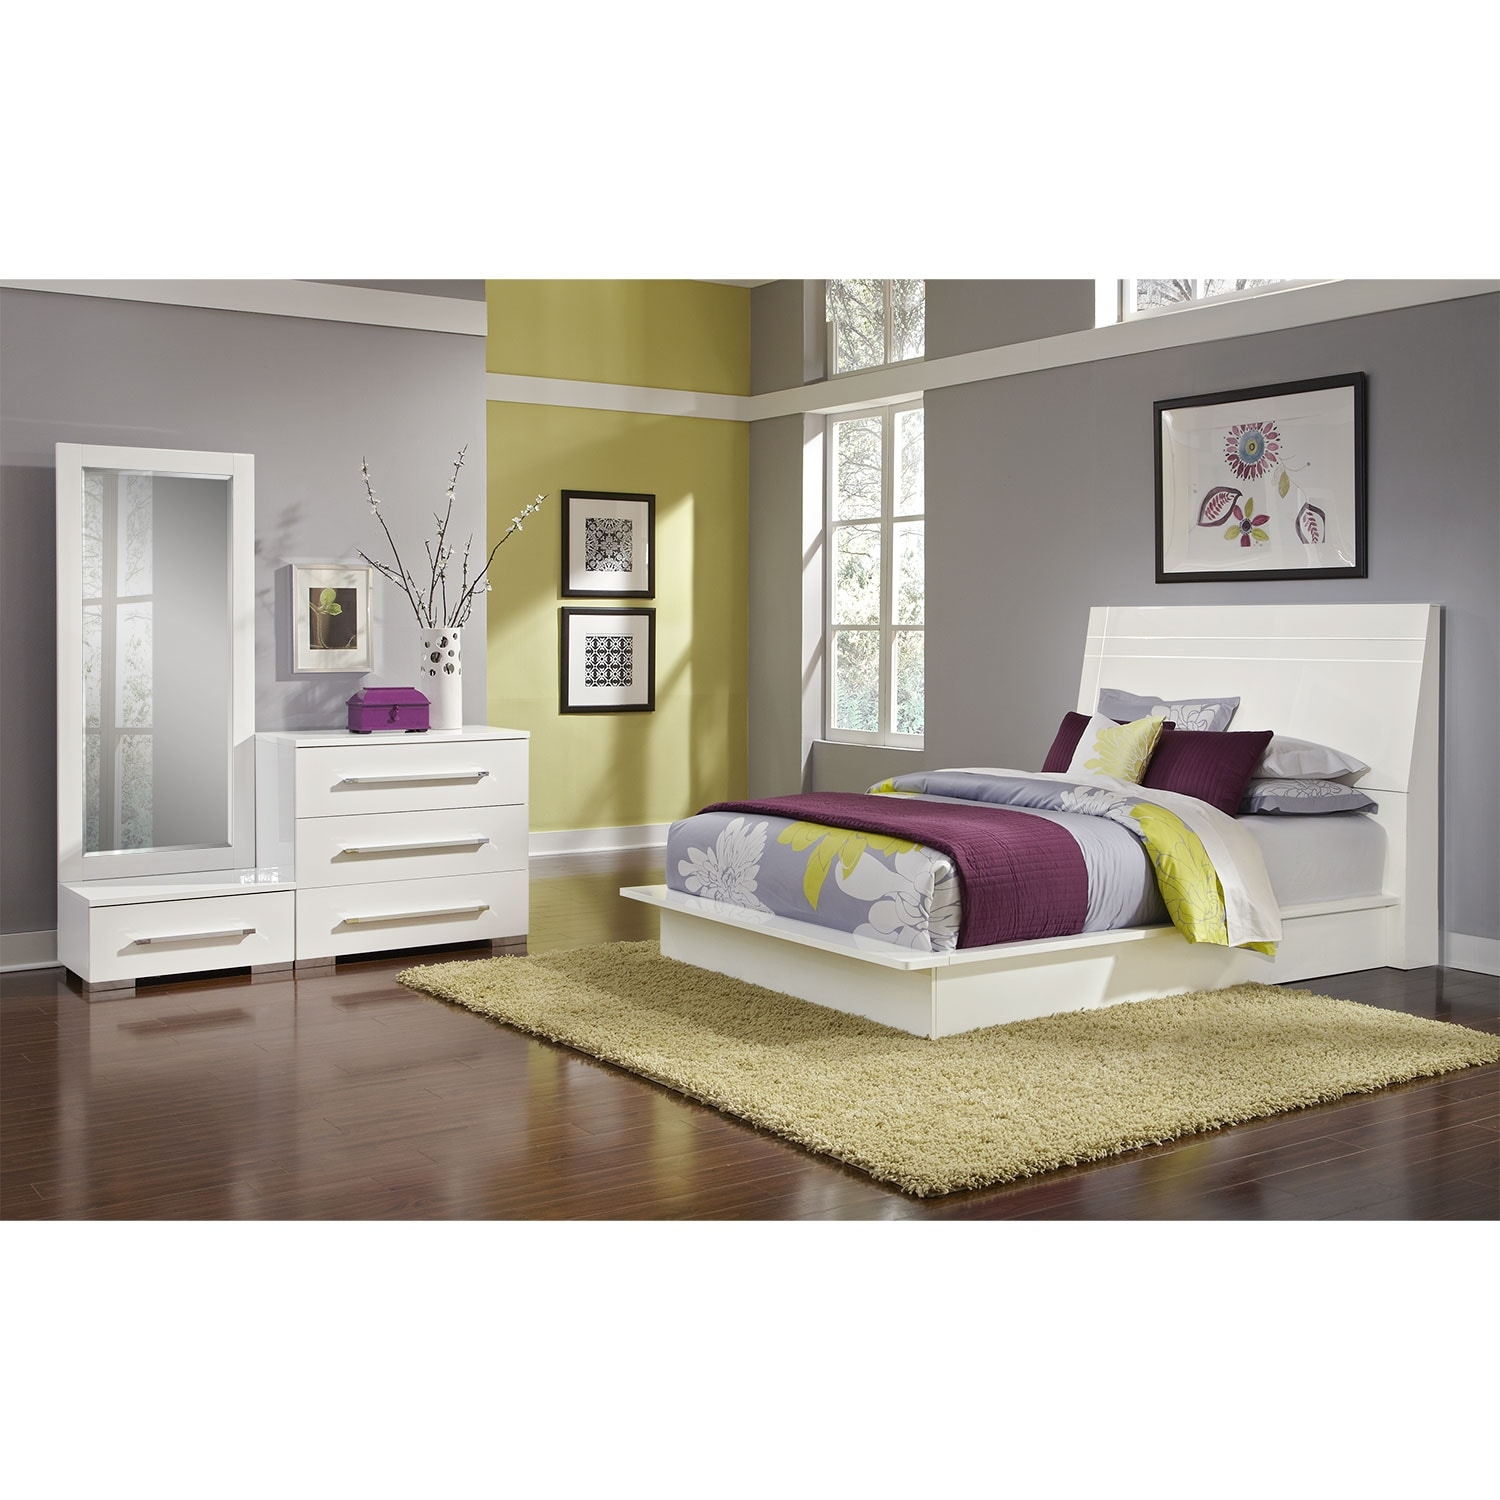 Bedroom Furniture - Dimora White II 5 Pc. King Bedroom (Alternate)